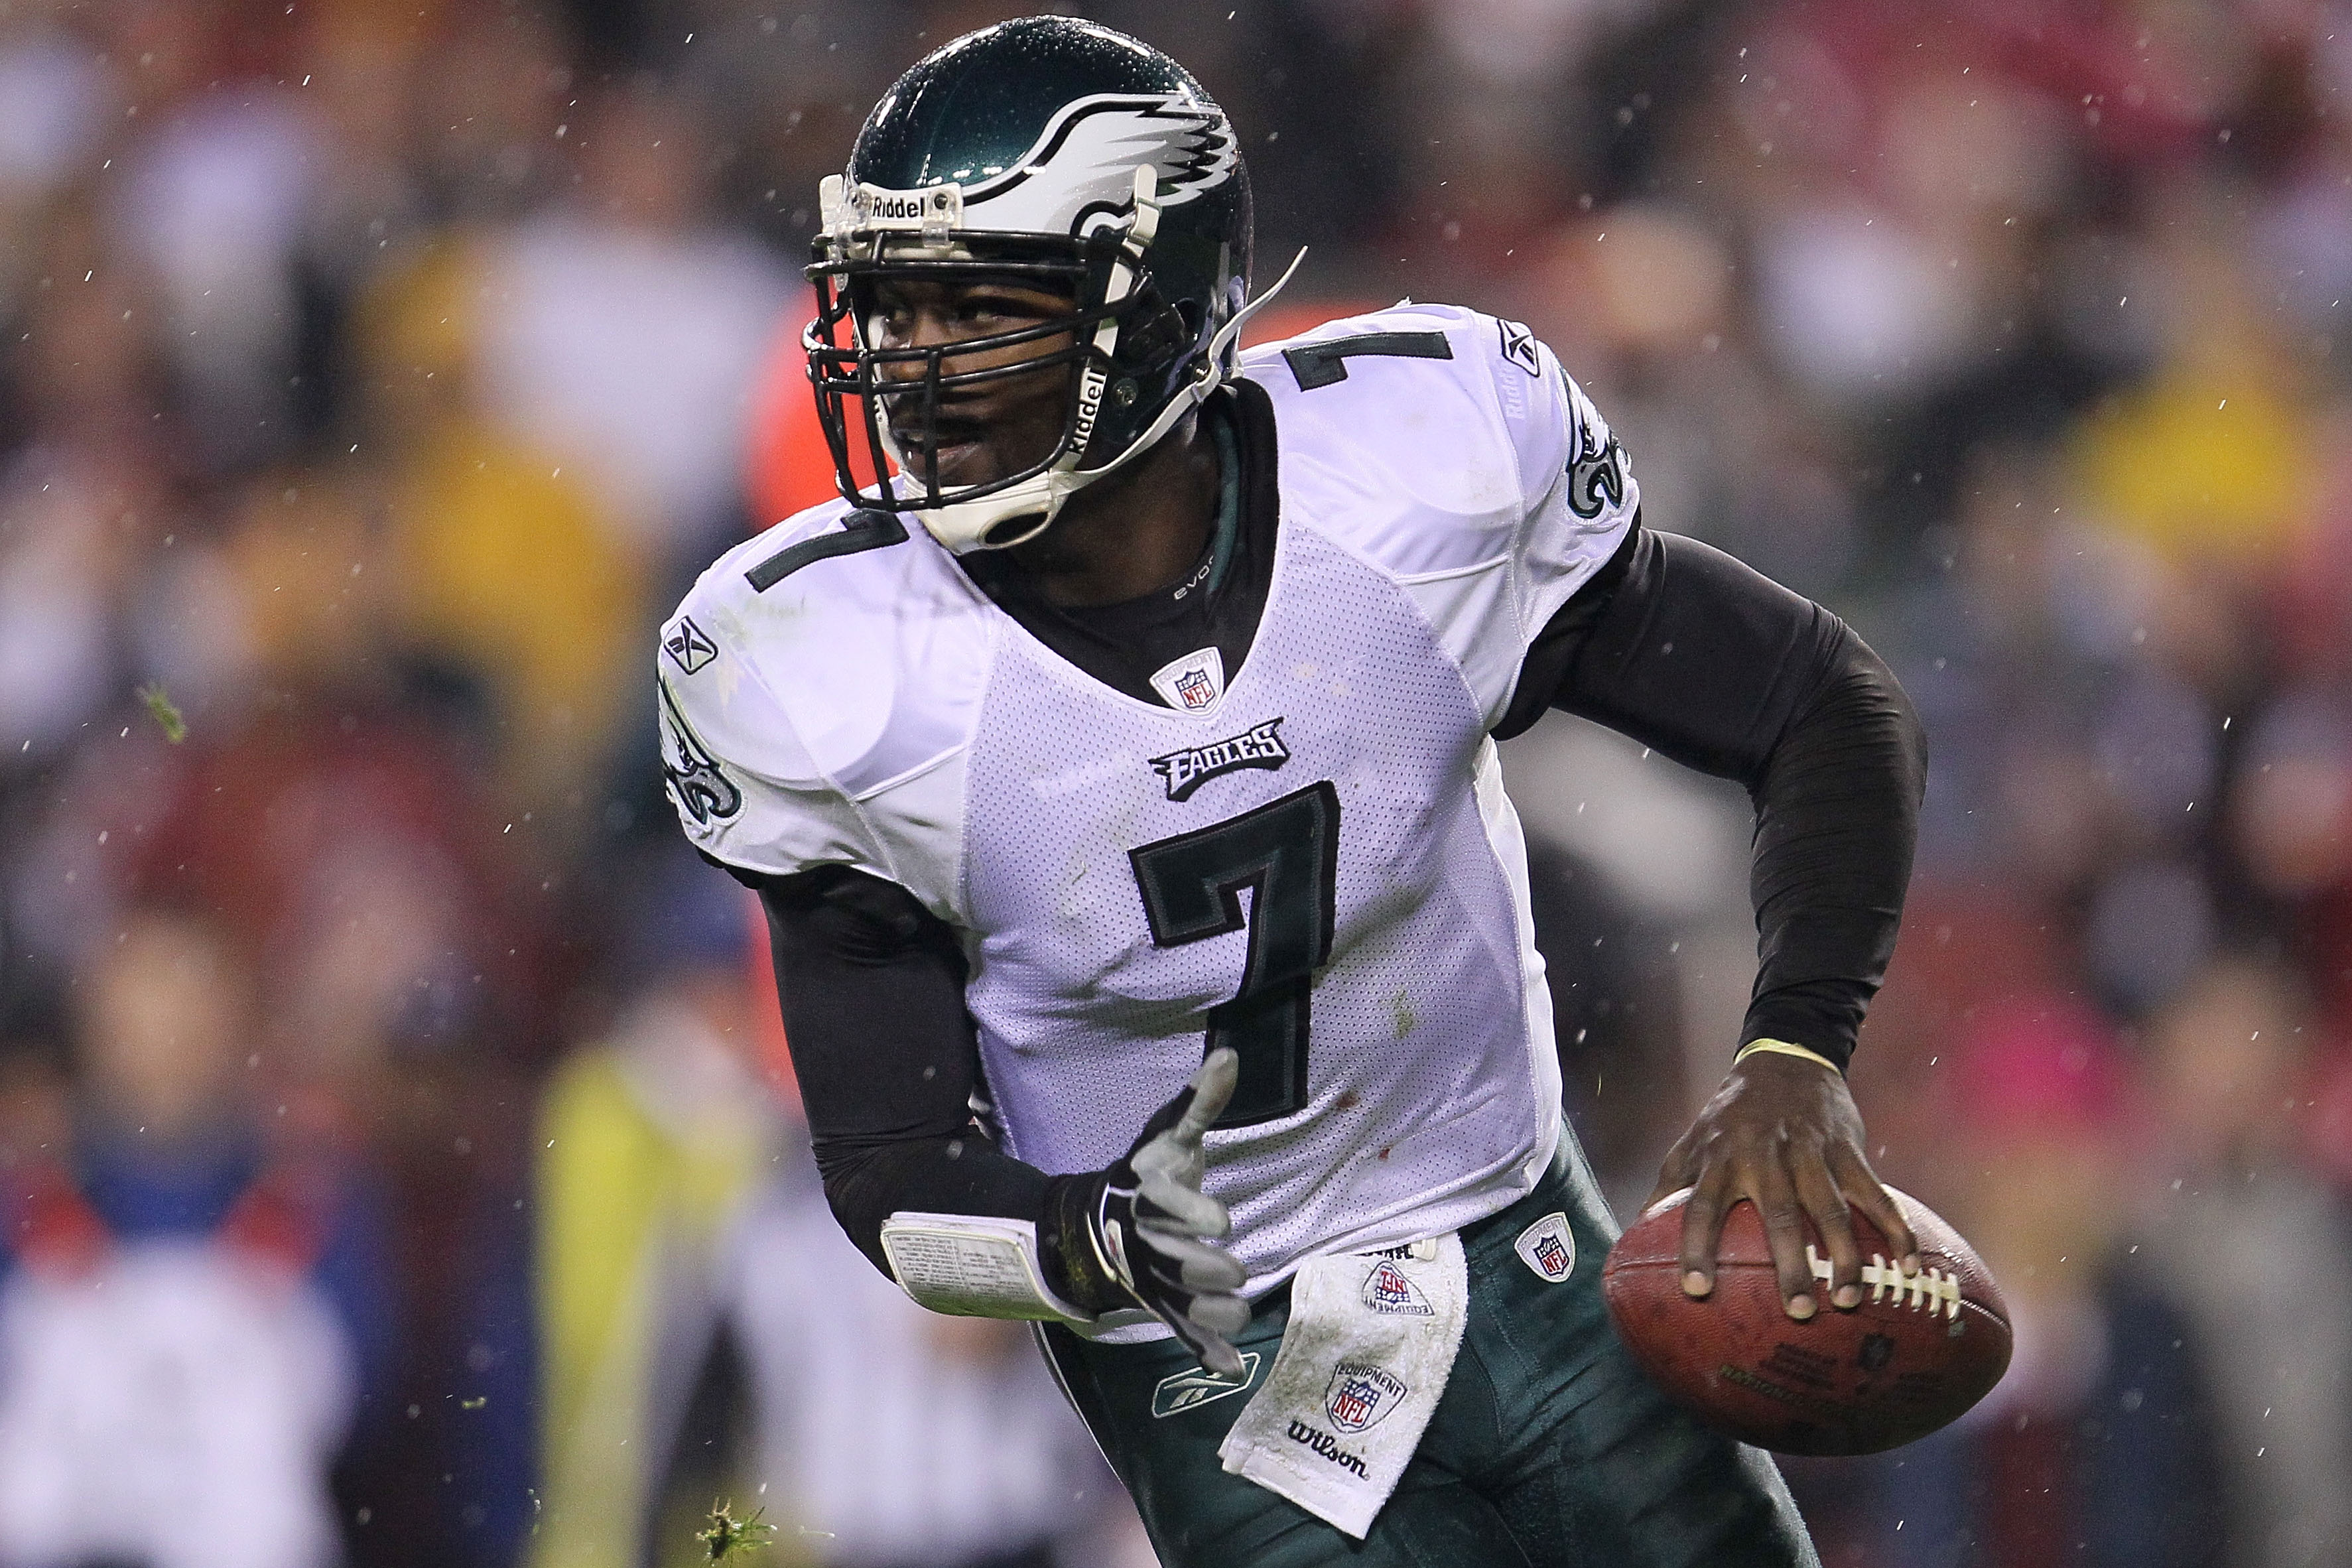 LANDOVER, MD - NOVEMBER 15:  Michael Vick #7 of the Philadelphia Eagles looks to pass against the Washington Redskins on November 15, 2010 at FedExField in Landover, Maryland.  (Photo by Chris McGrath/Getty Images)